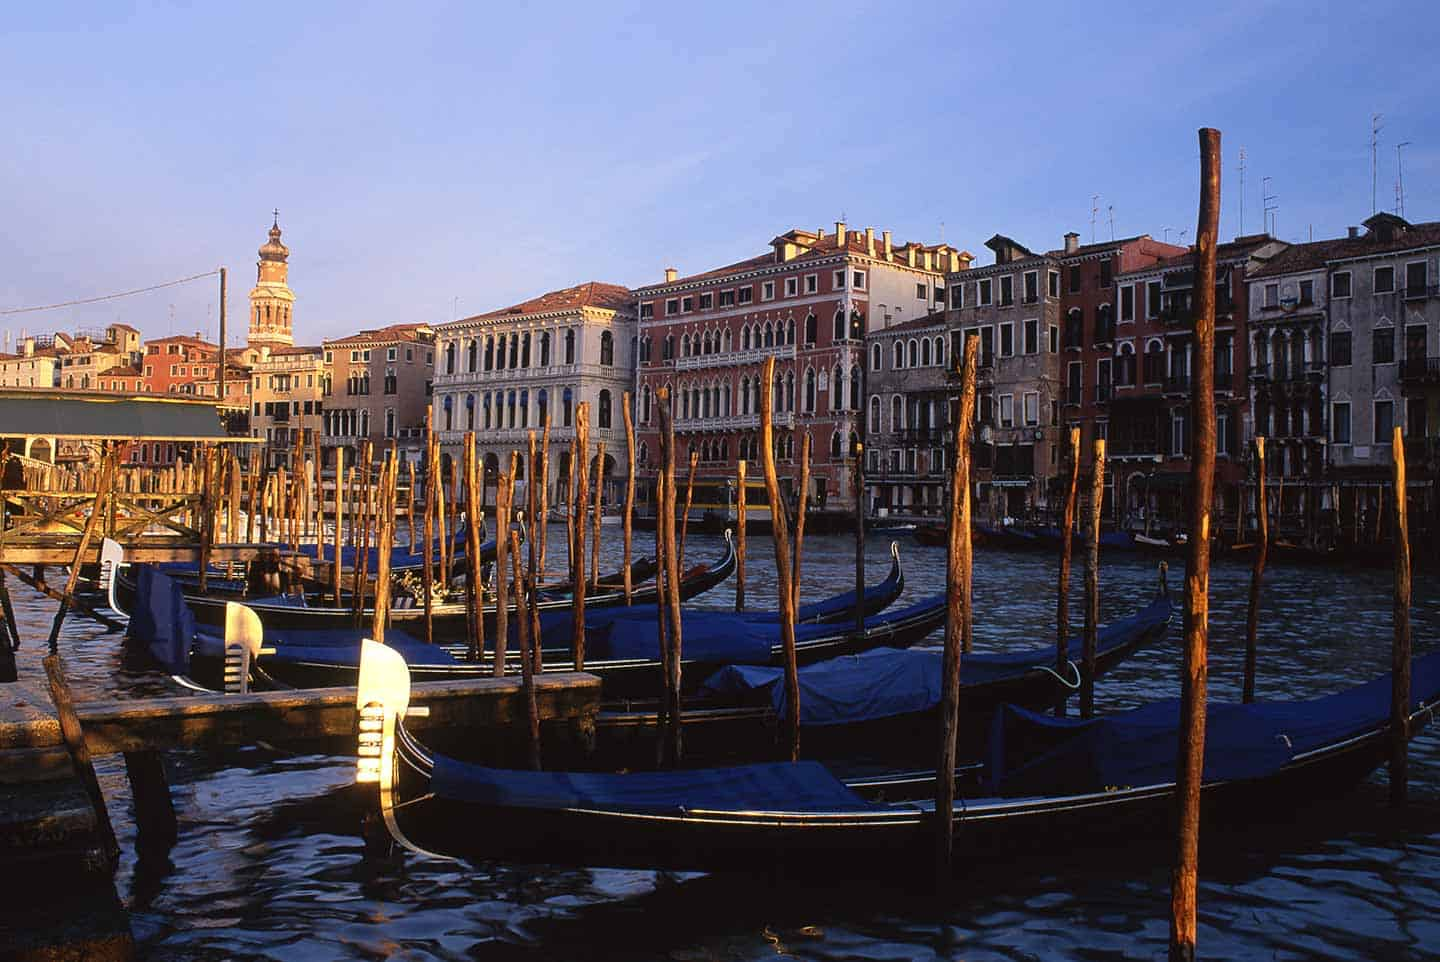 Image of gondolas on the Grand Canal near San Silvestro, Venice